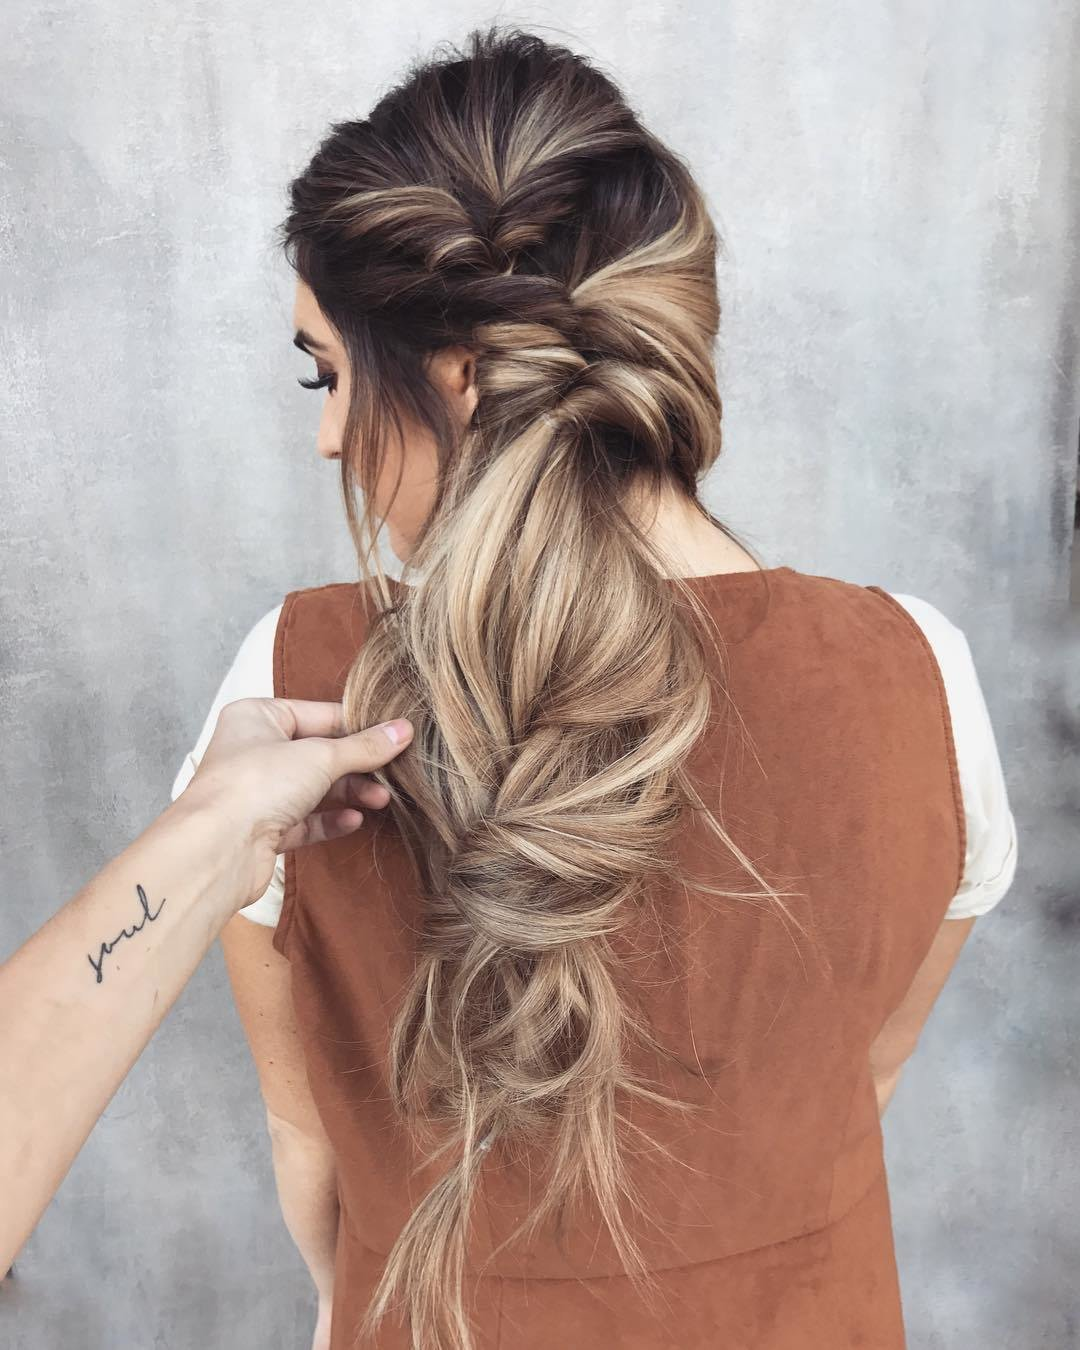 The Best 10 Messy Braided Long Hairstyle Ideas For Weddings Pictures